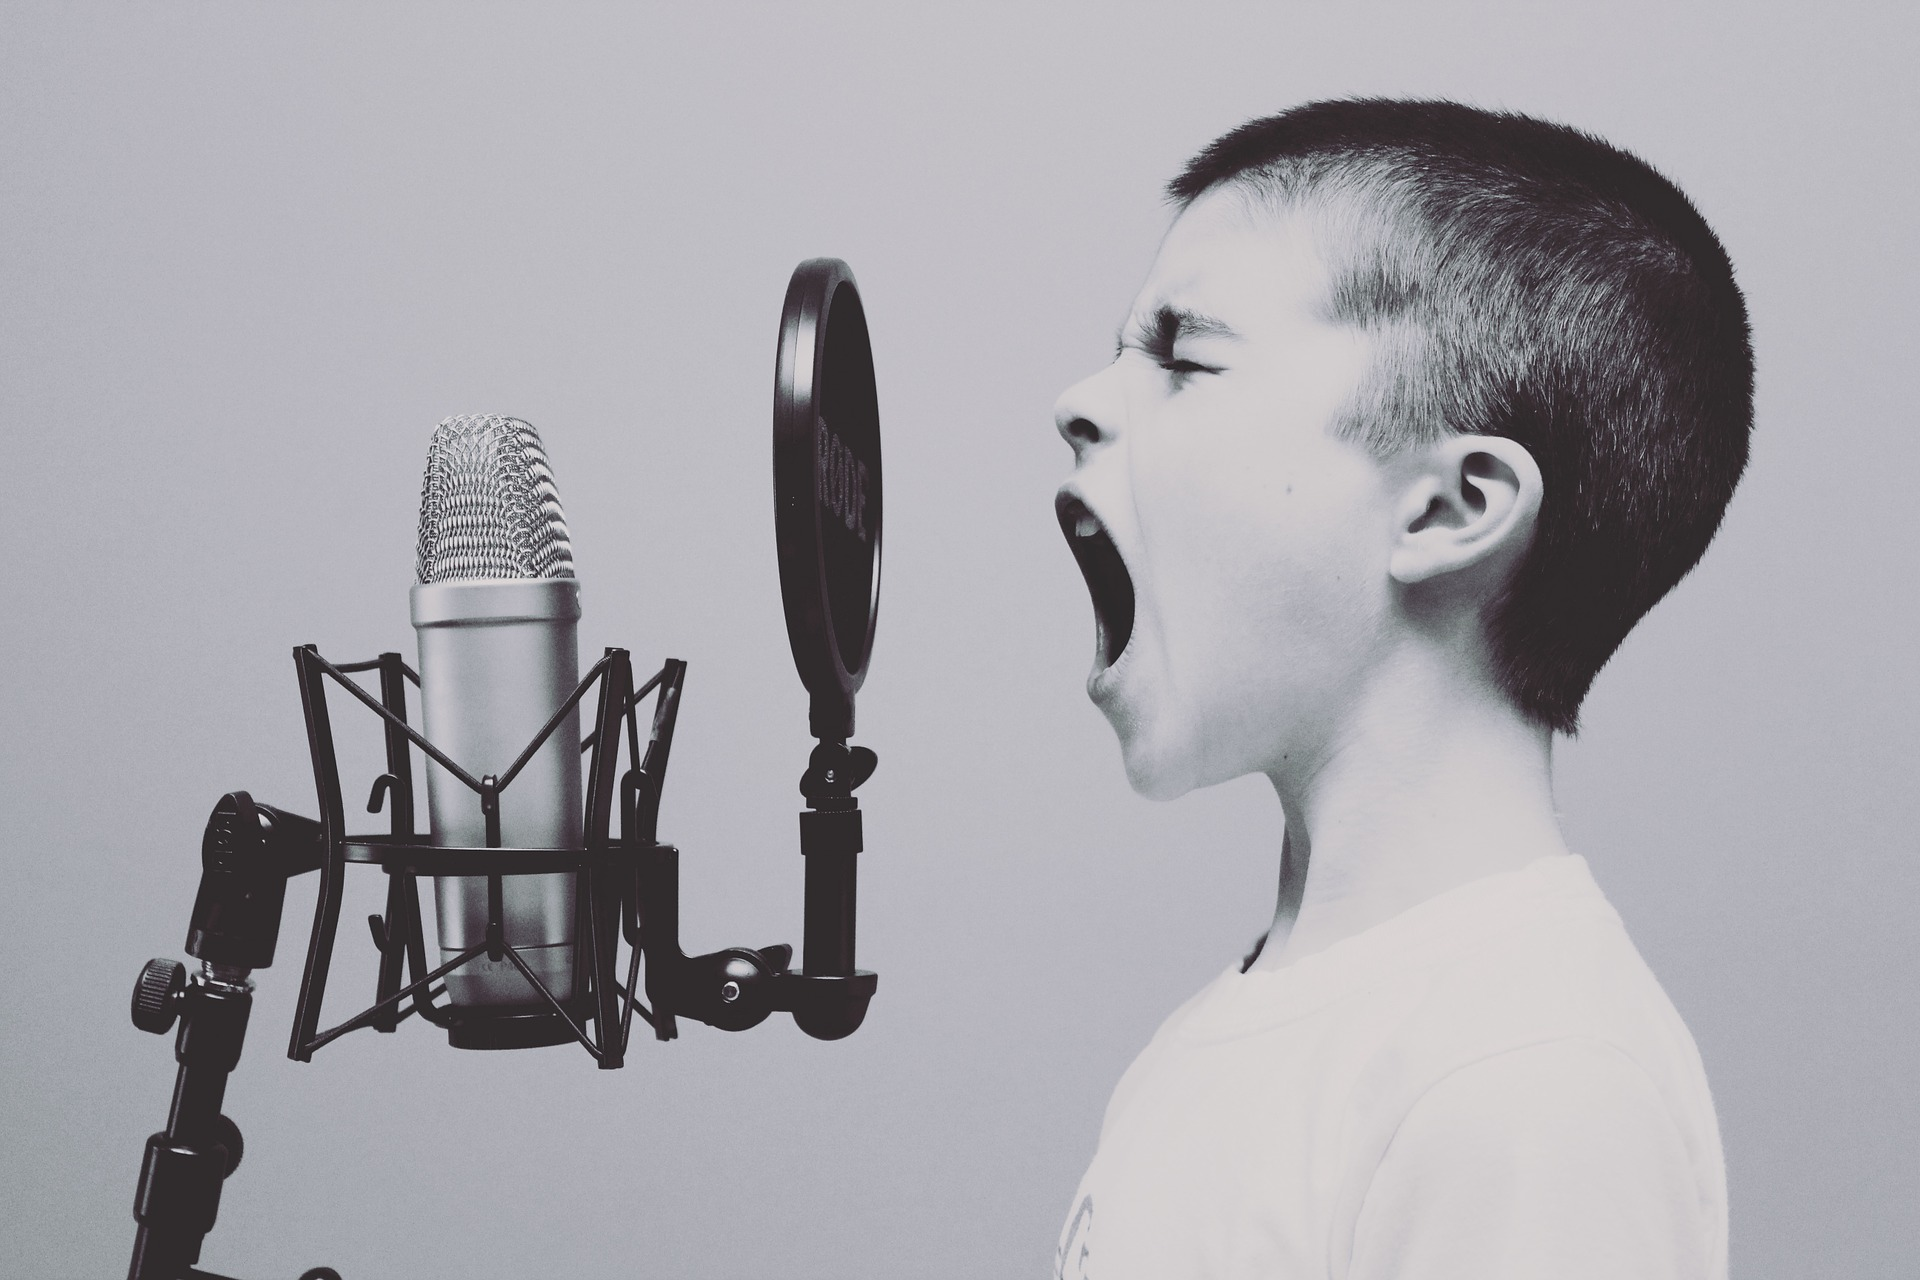 A young boy shouting into a microphone.